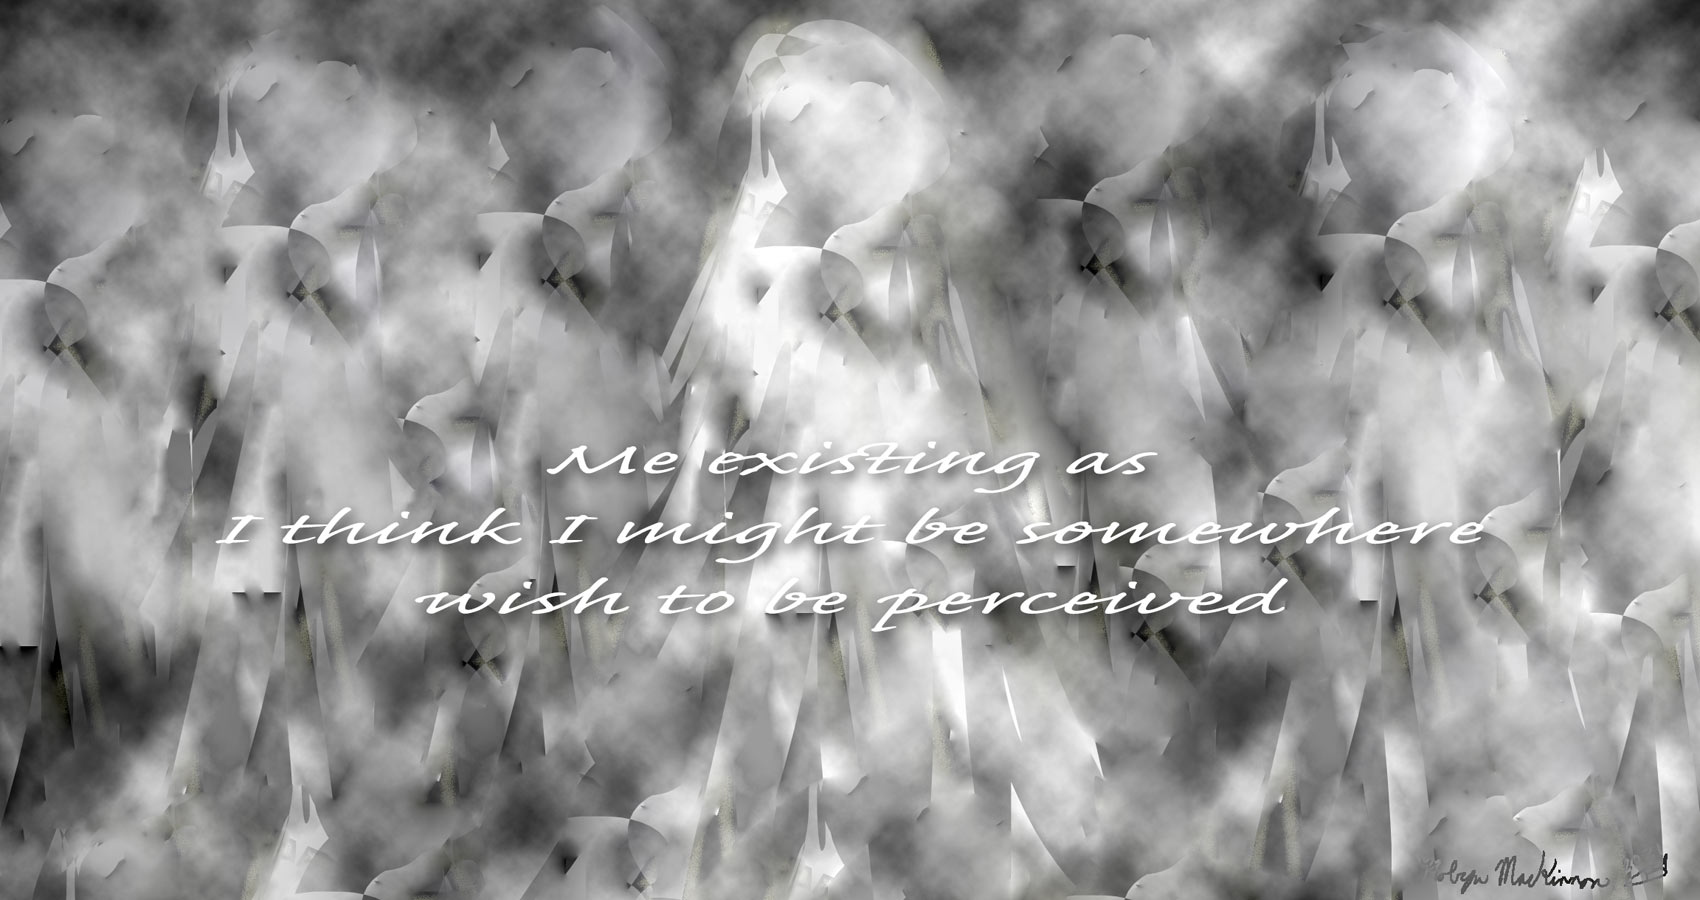 Wish To Be Perceived, a haiku by Robyn MacKinnon at Spillwords.com